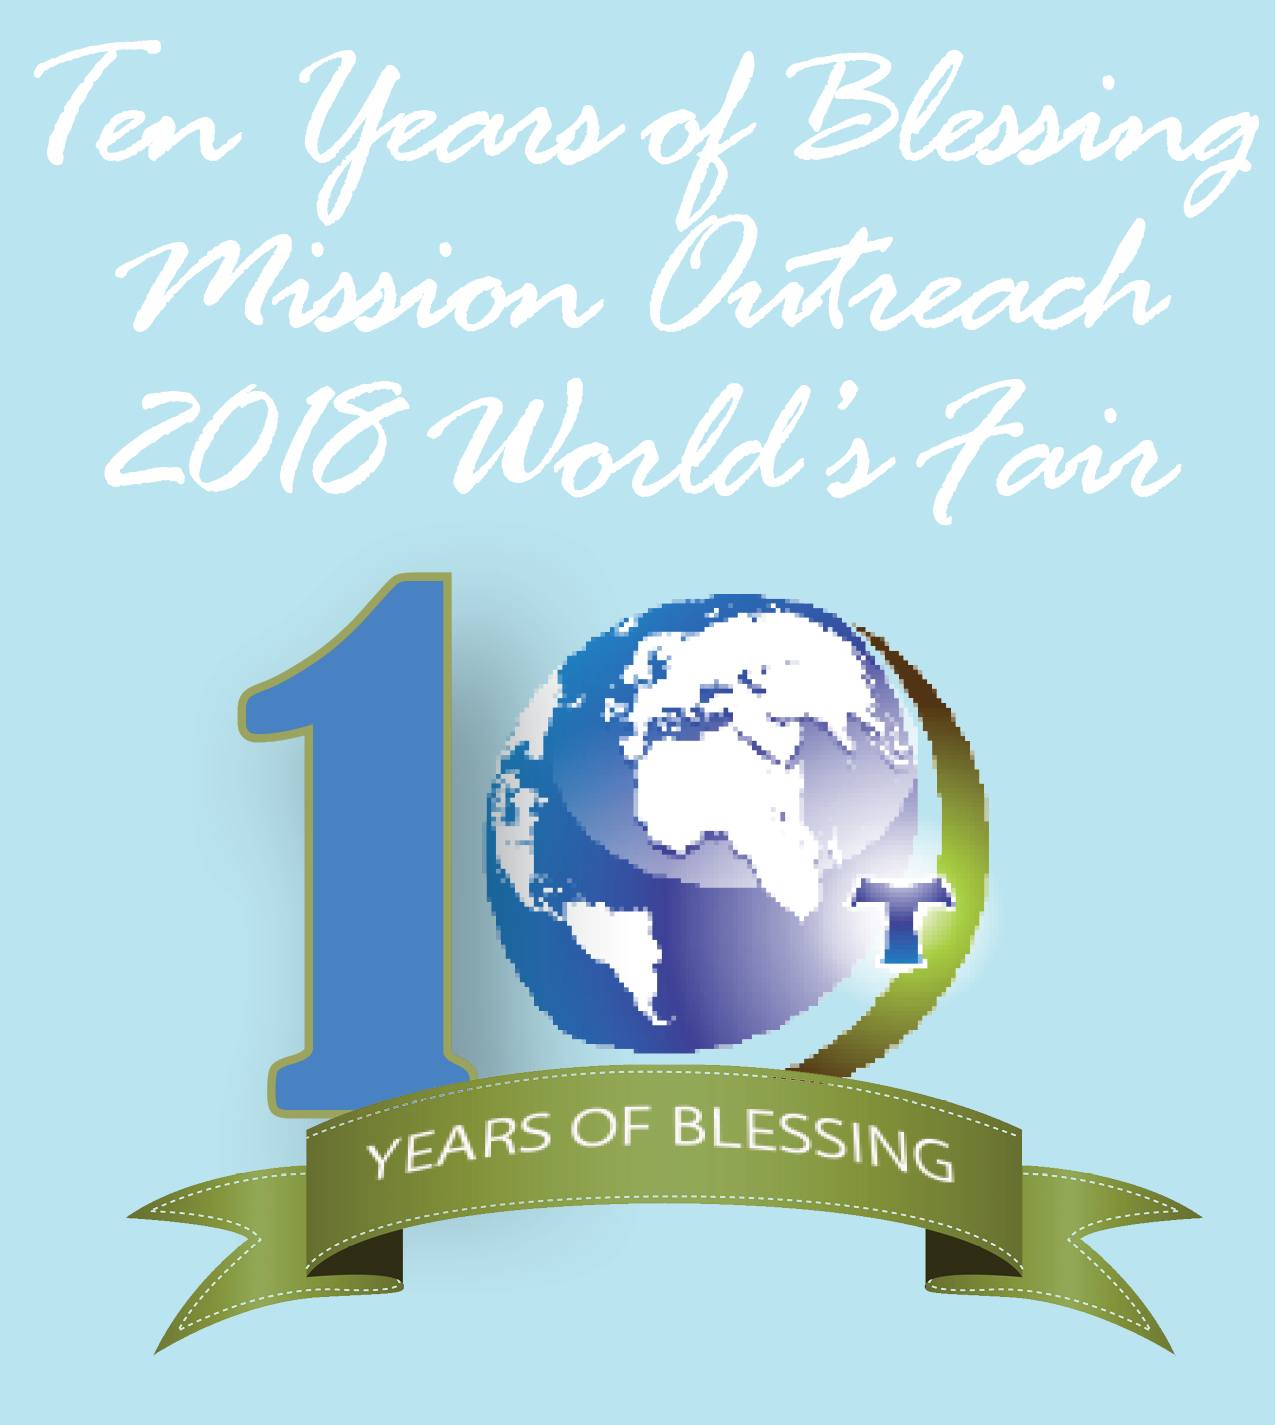 10 year blessing thumbnail